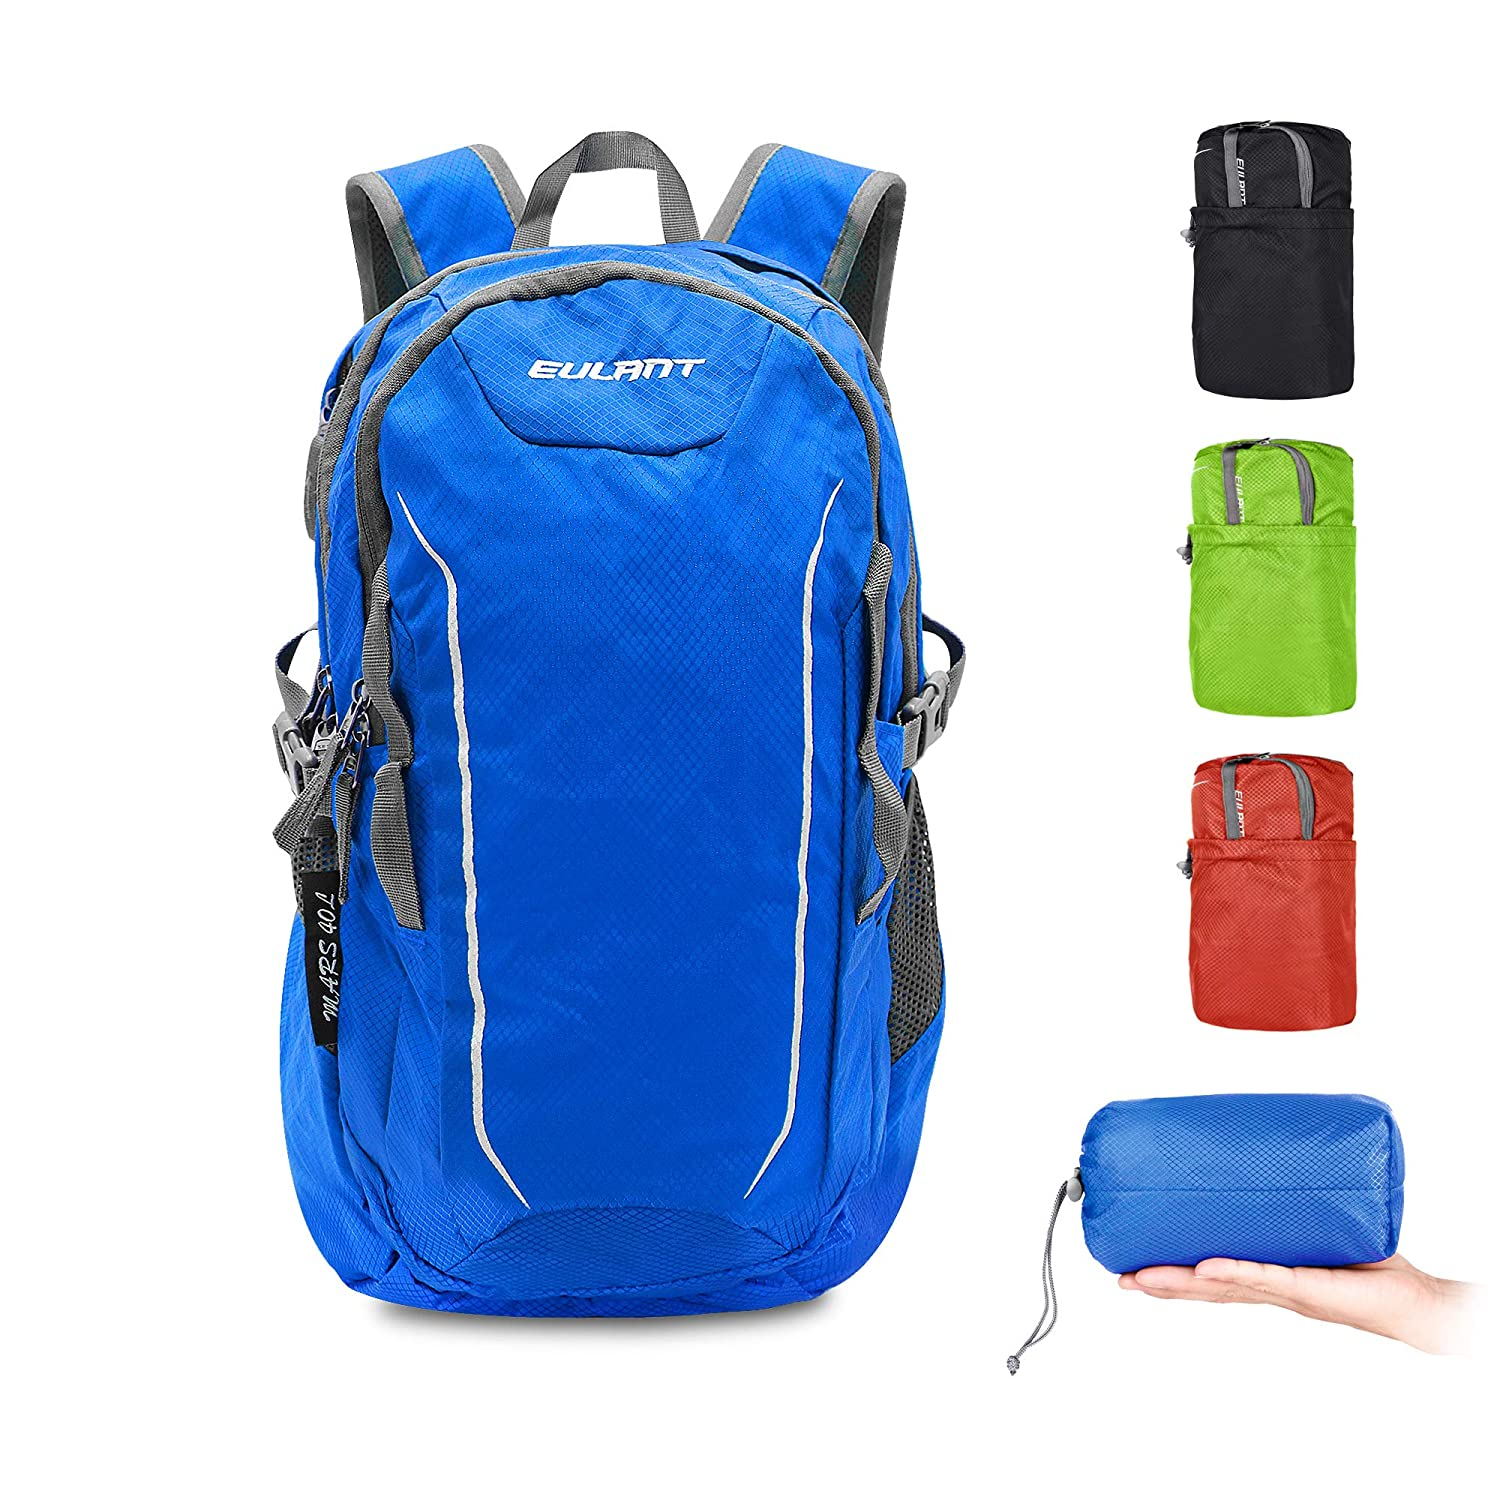 blueee EULANT Lightweight Packable Travel Hiking Backpack Daypack, Water Resistant Durable Camping Outdoor Foldable Backpacks for Women Men Kids